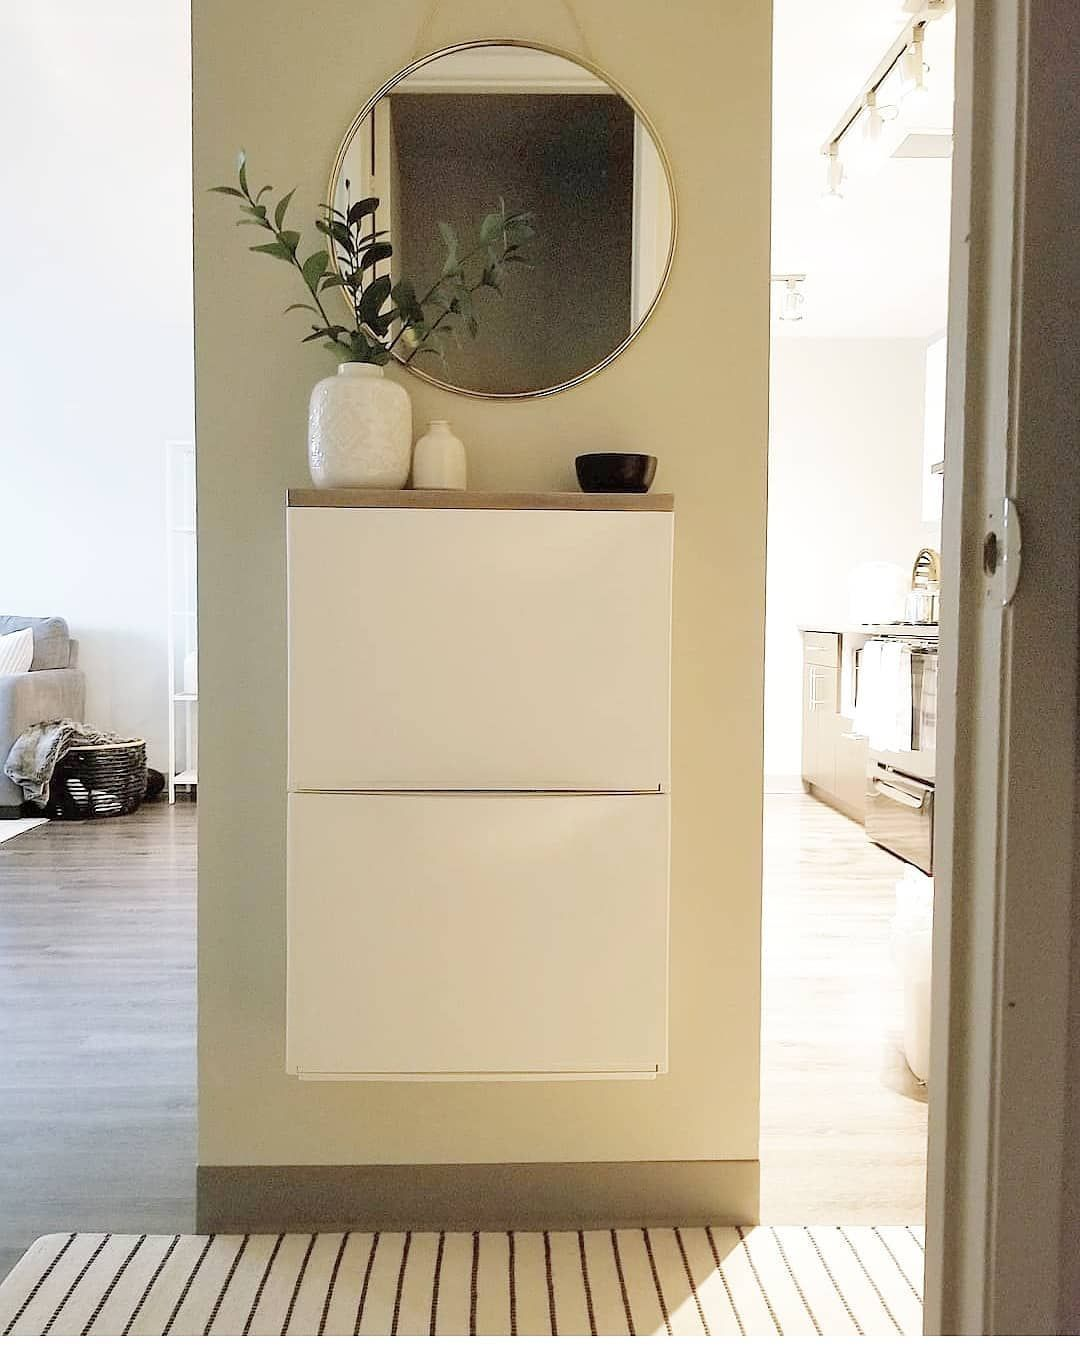 #IKEAInspo Fan Galerie und Inspiration – My Blog